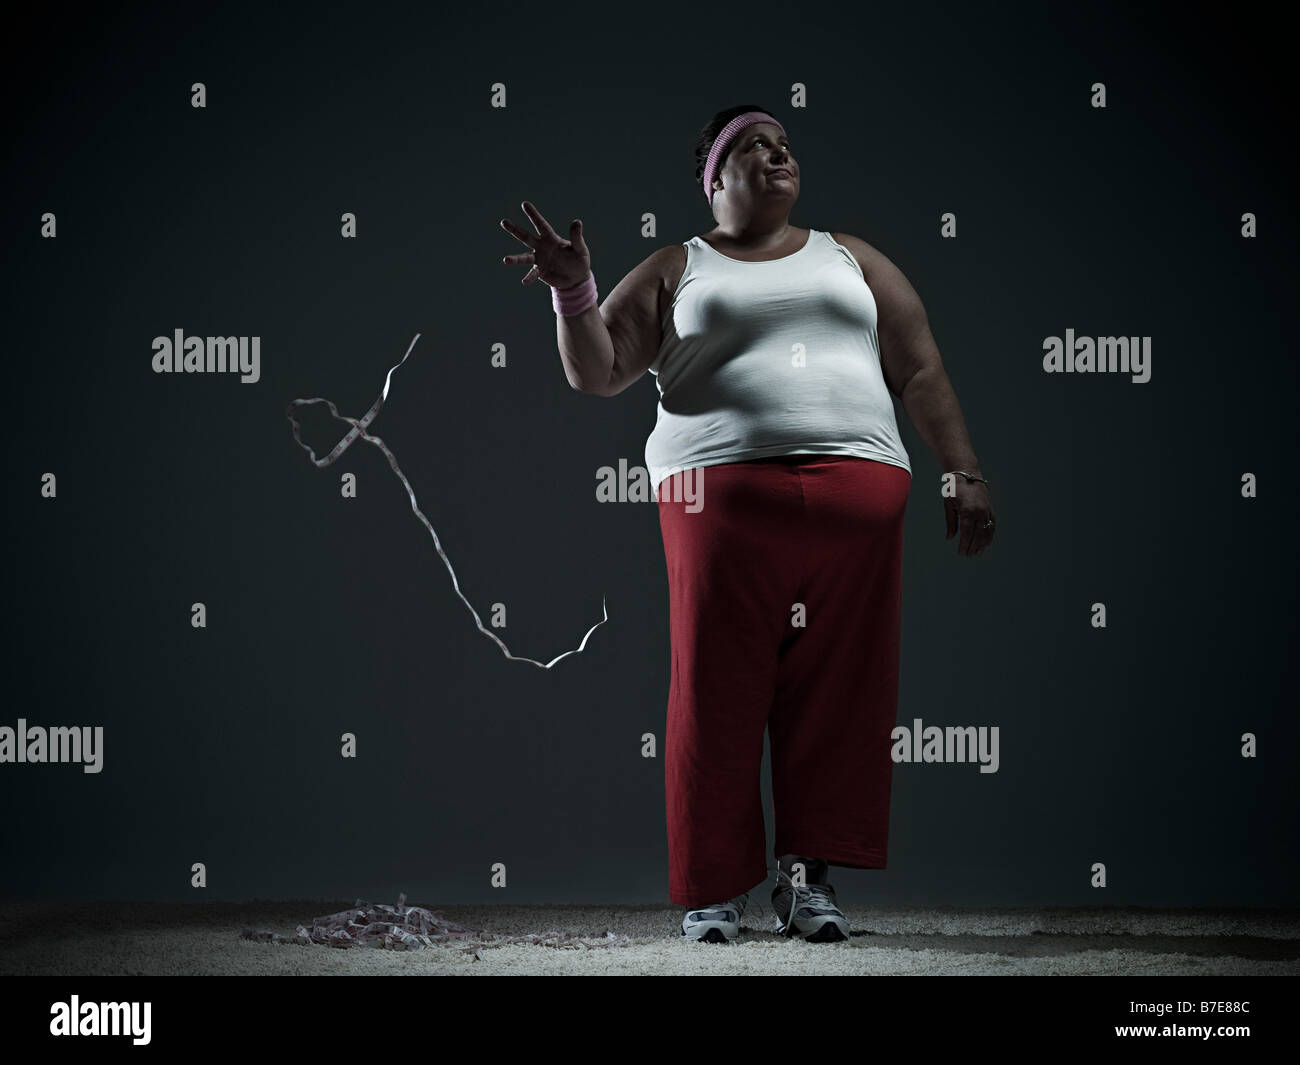 Overweight woman throwing measuring tape - Stock Image